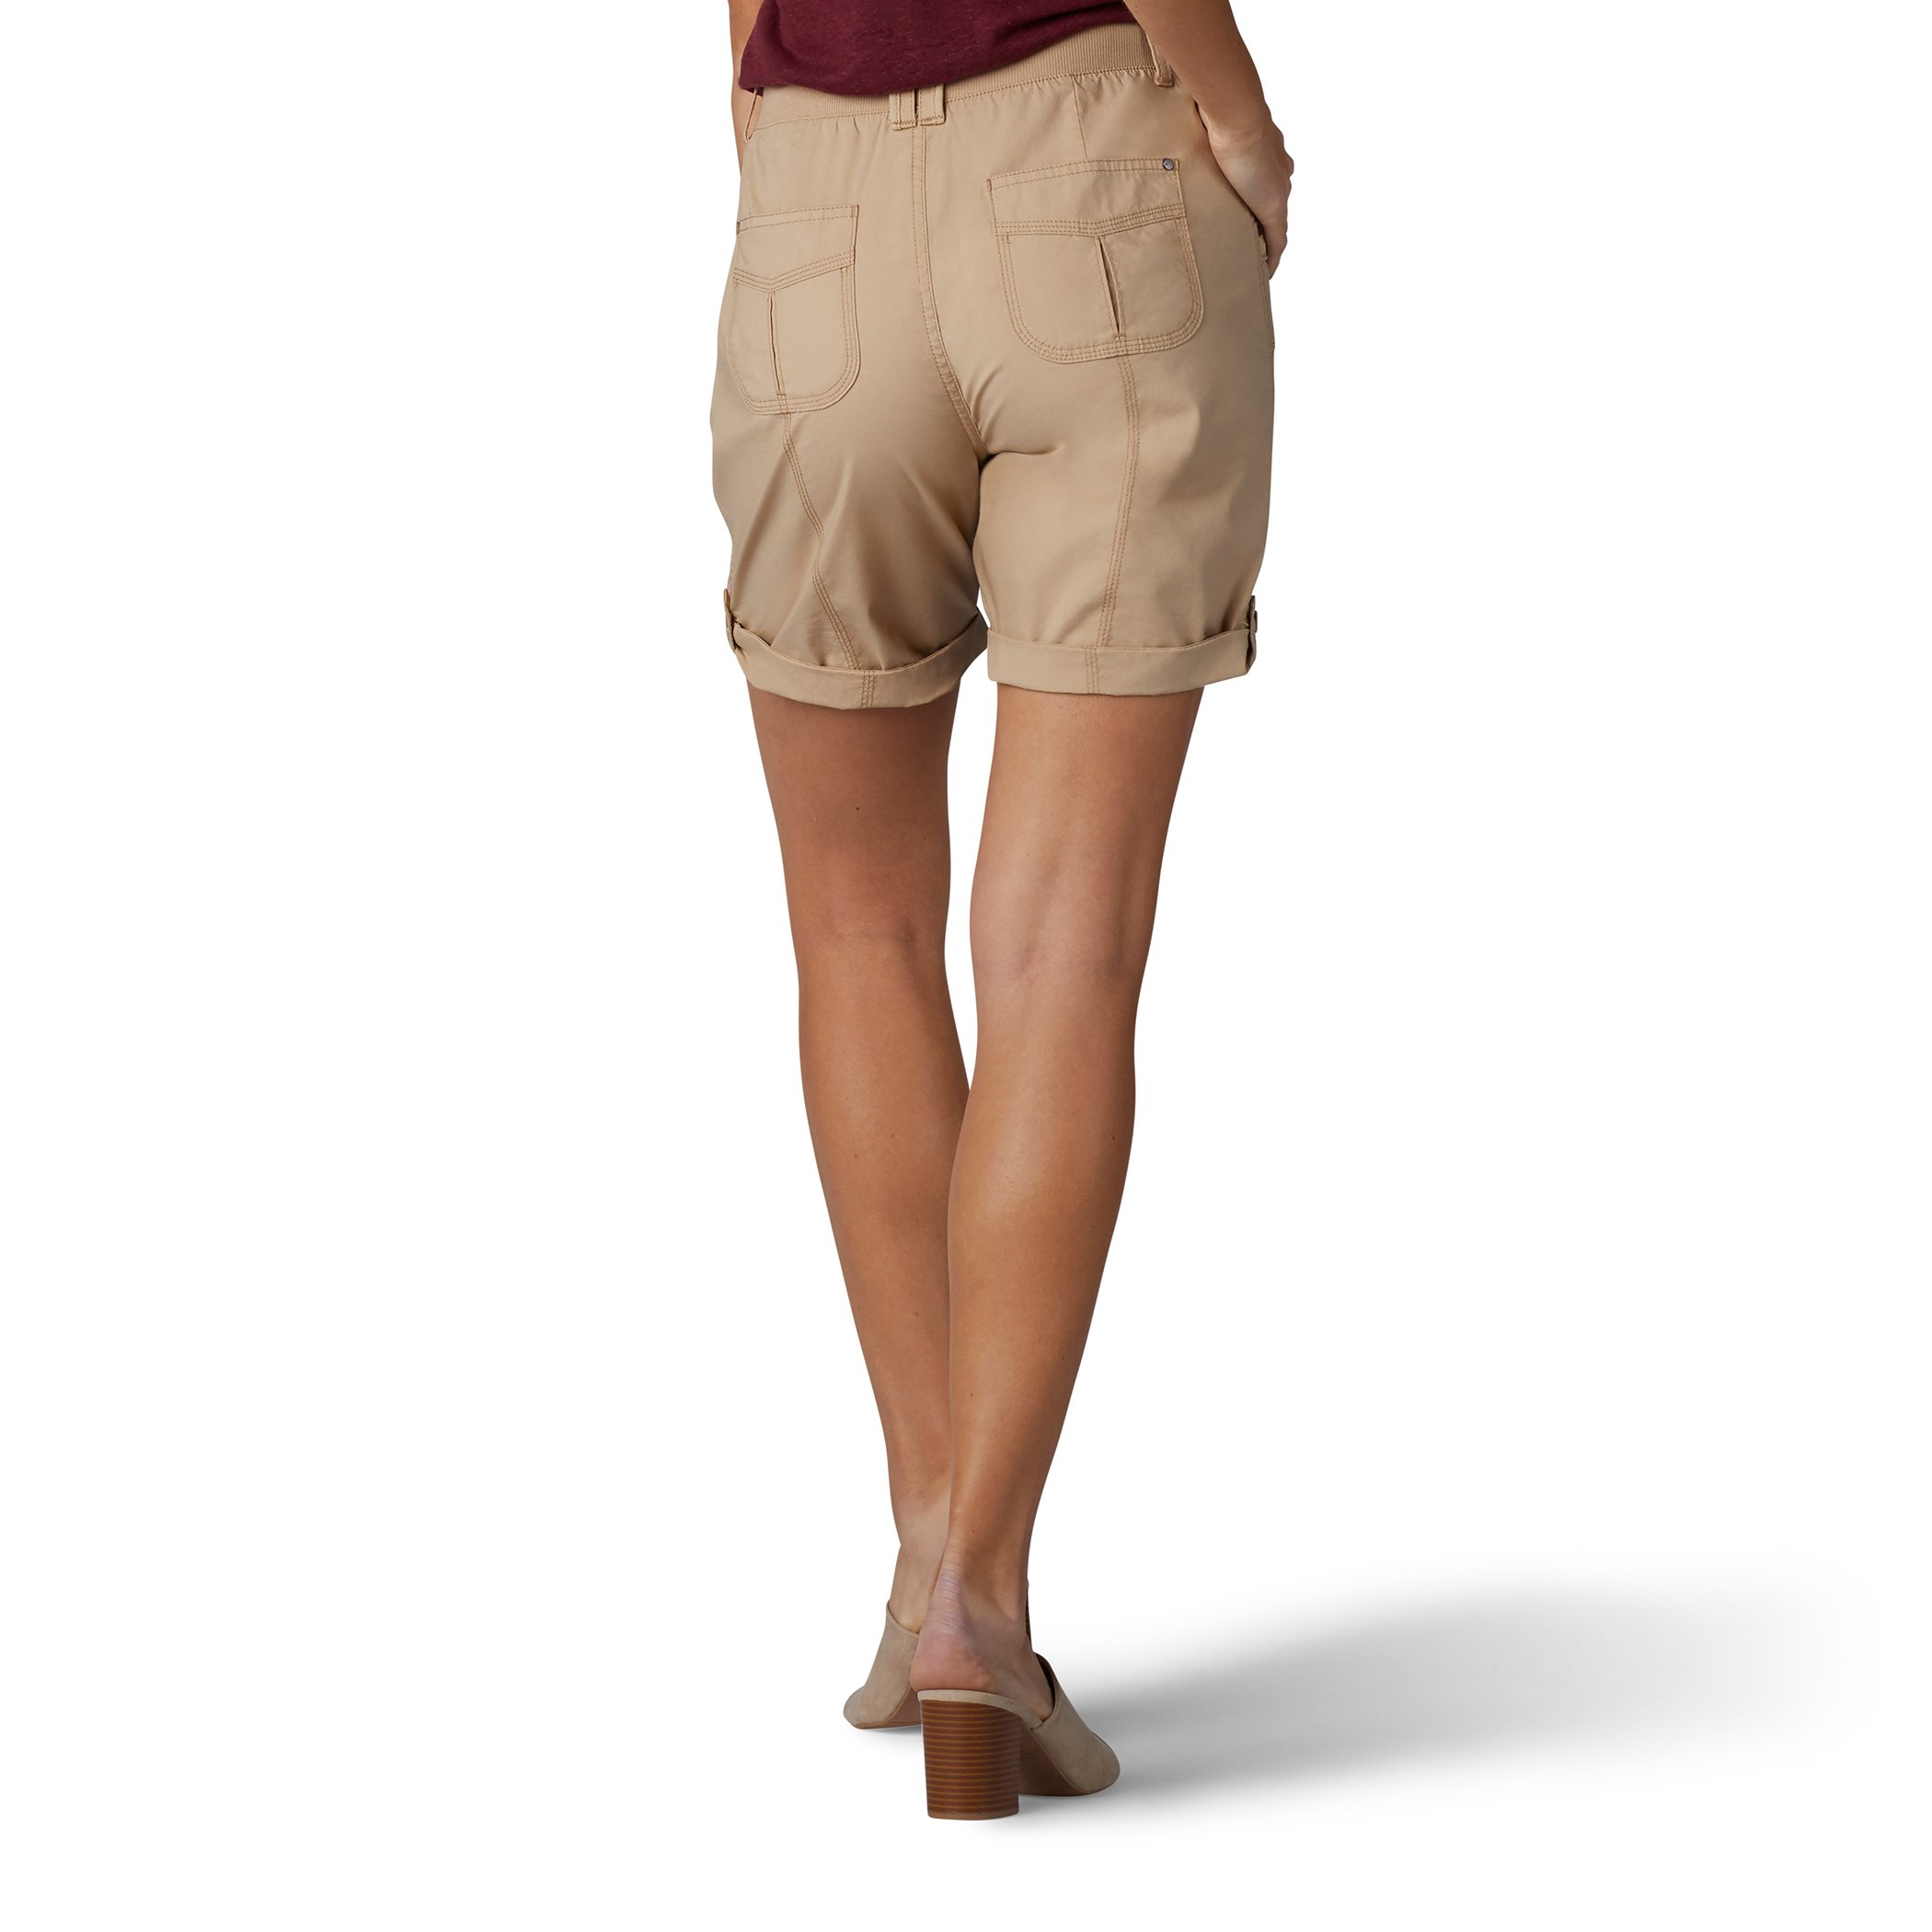 LEE Women's Relaxed Fit Melody Knit Waist Bermuda Short, Wheatgrass, 14 by LEE (Image #2)